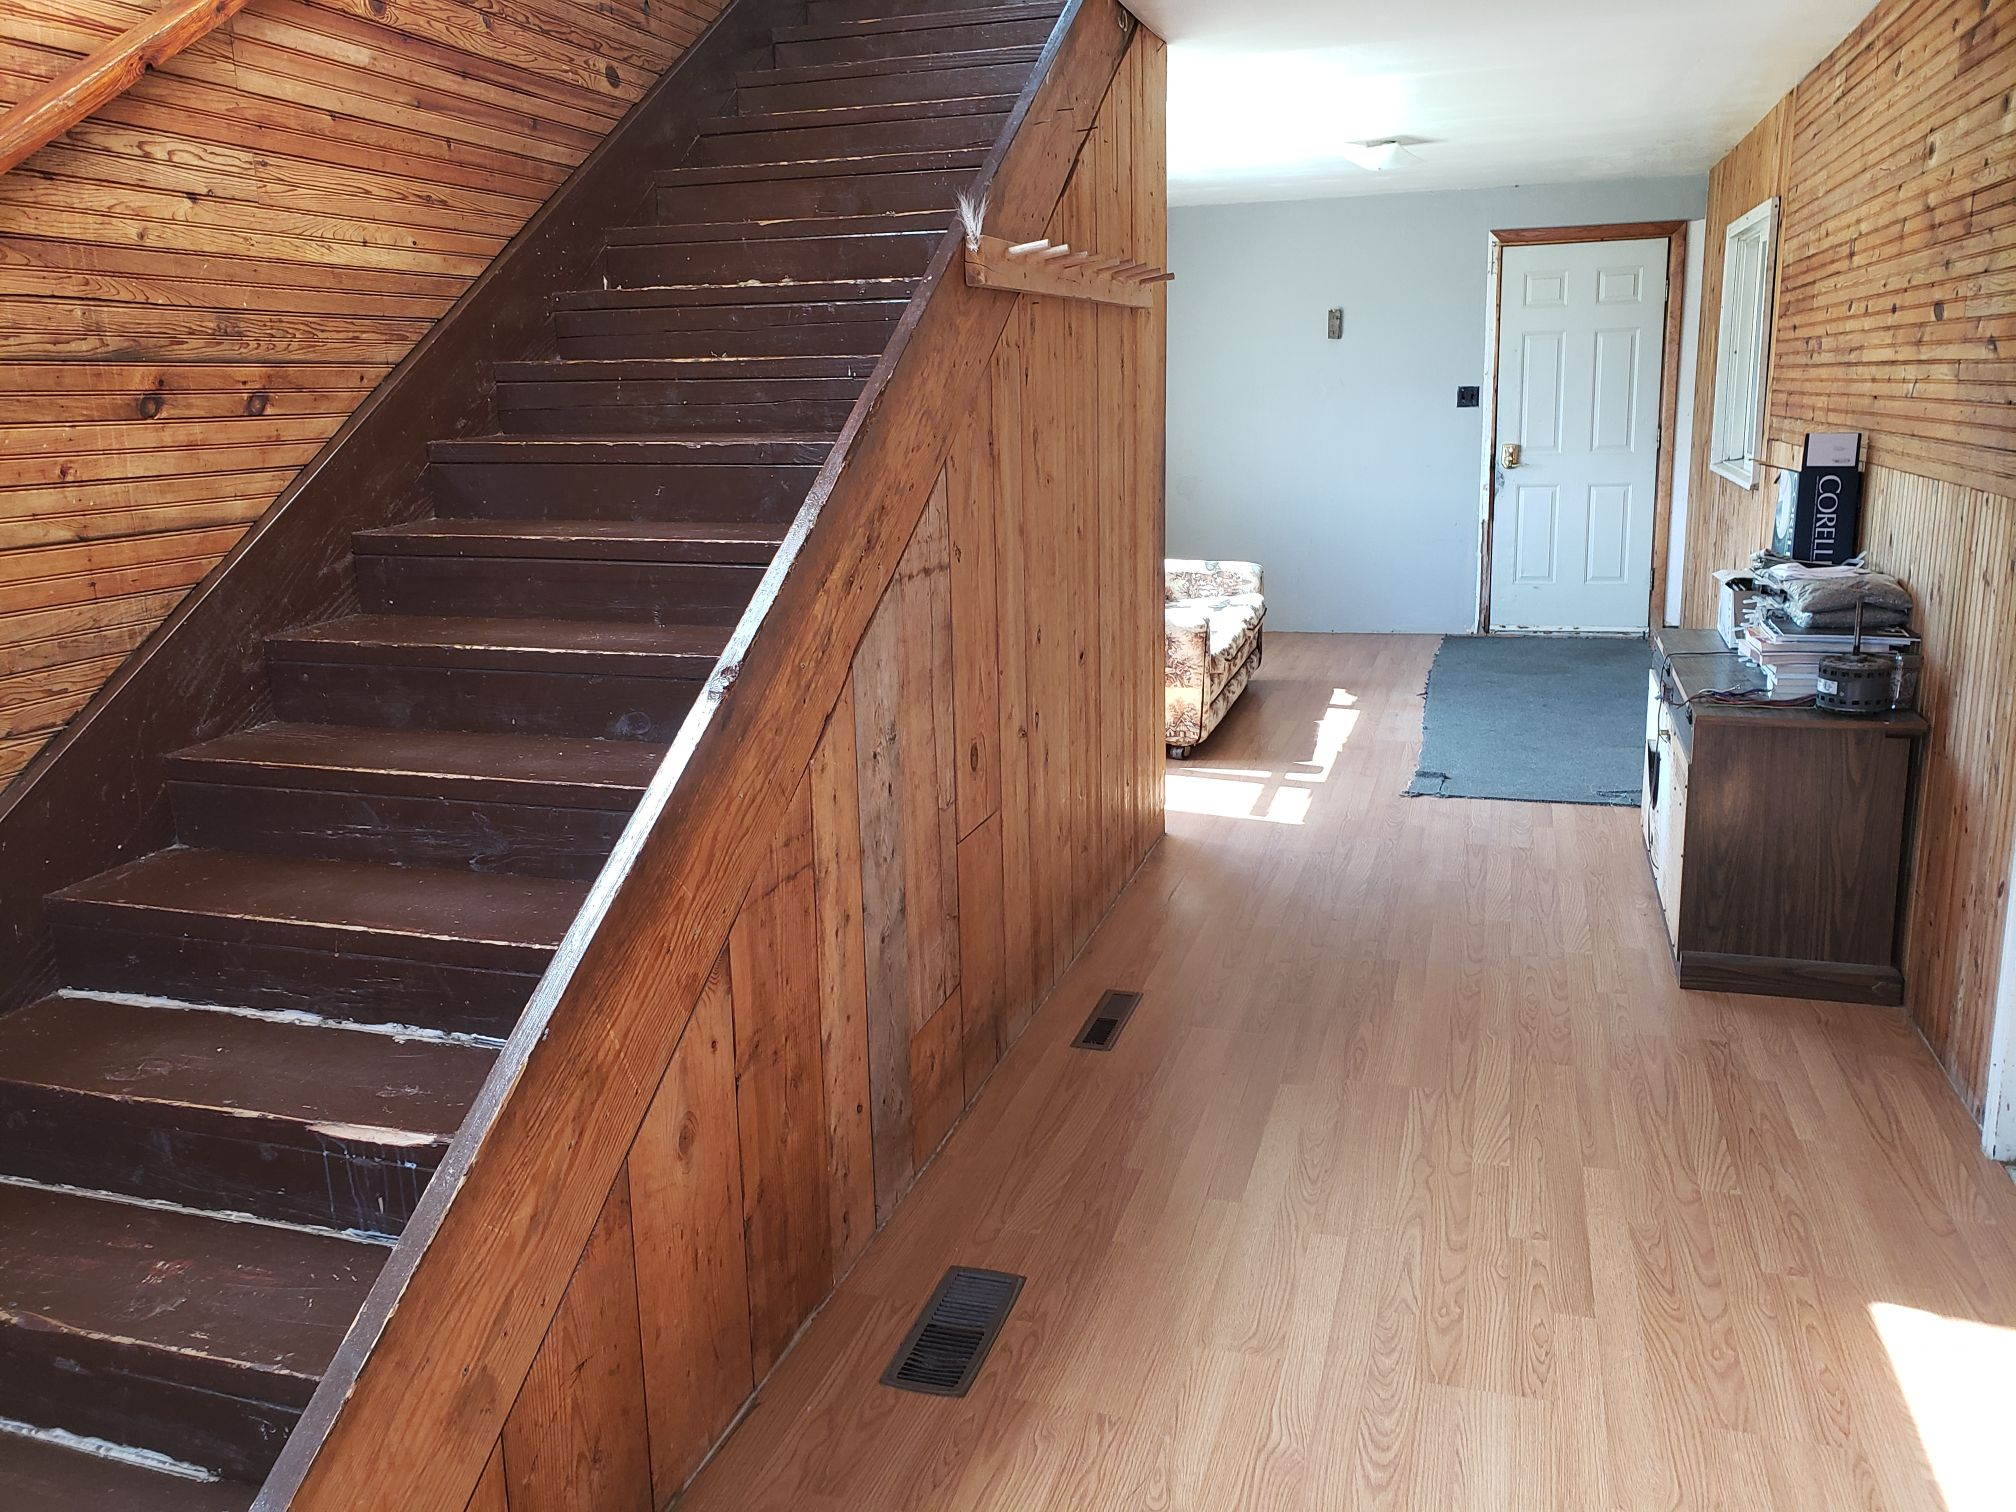 Timberwolf-Hallway-Trappers Point Camp-Sturgeon Lake-Savant Lake-Ontario